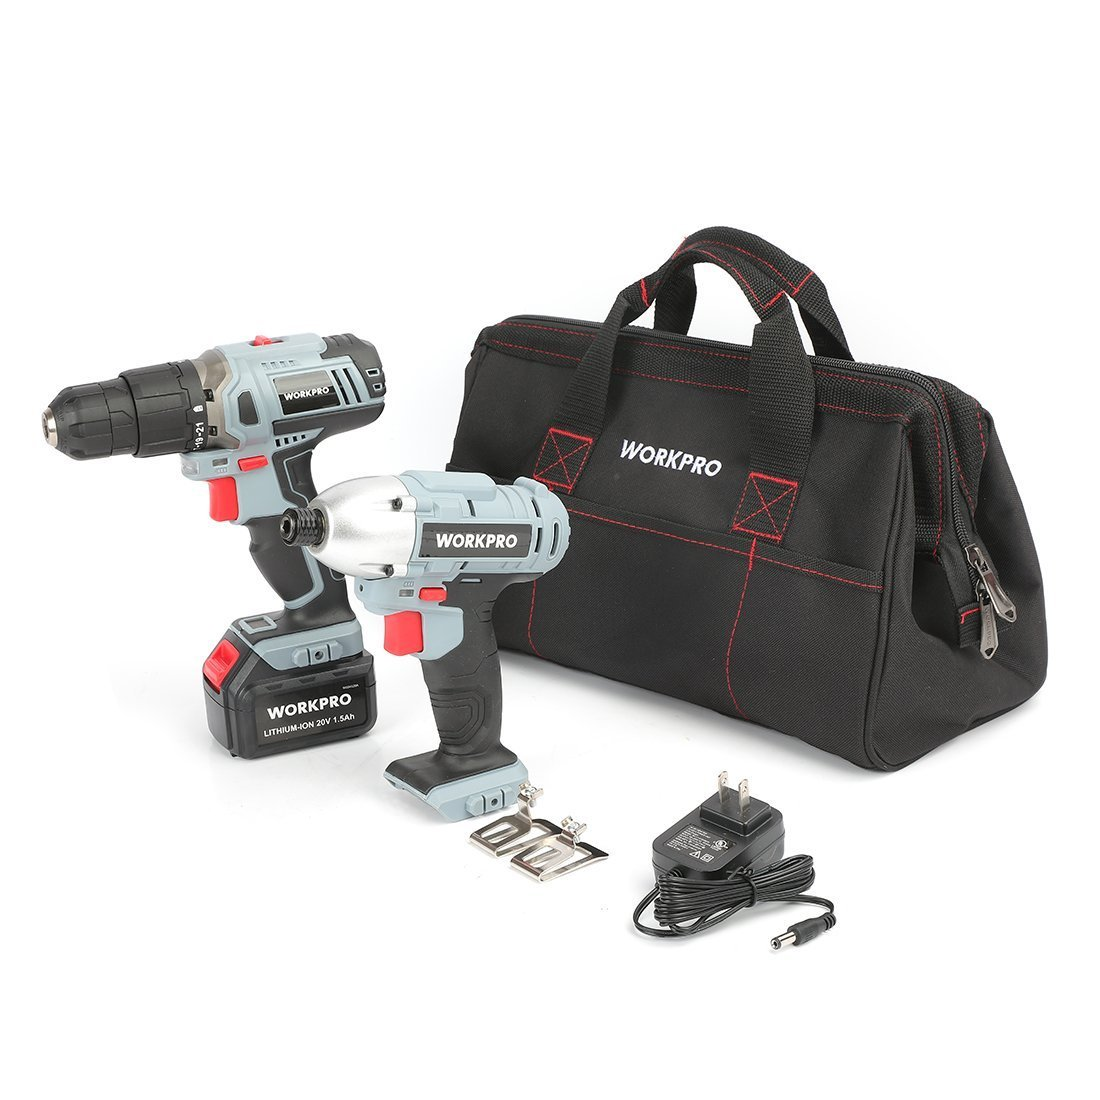 WORKPRO Cordless Drill/Driver Impact Combo Kit 20V Lithium (1.5Ah), 1 Battery and Charger Included LTD